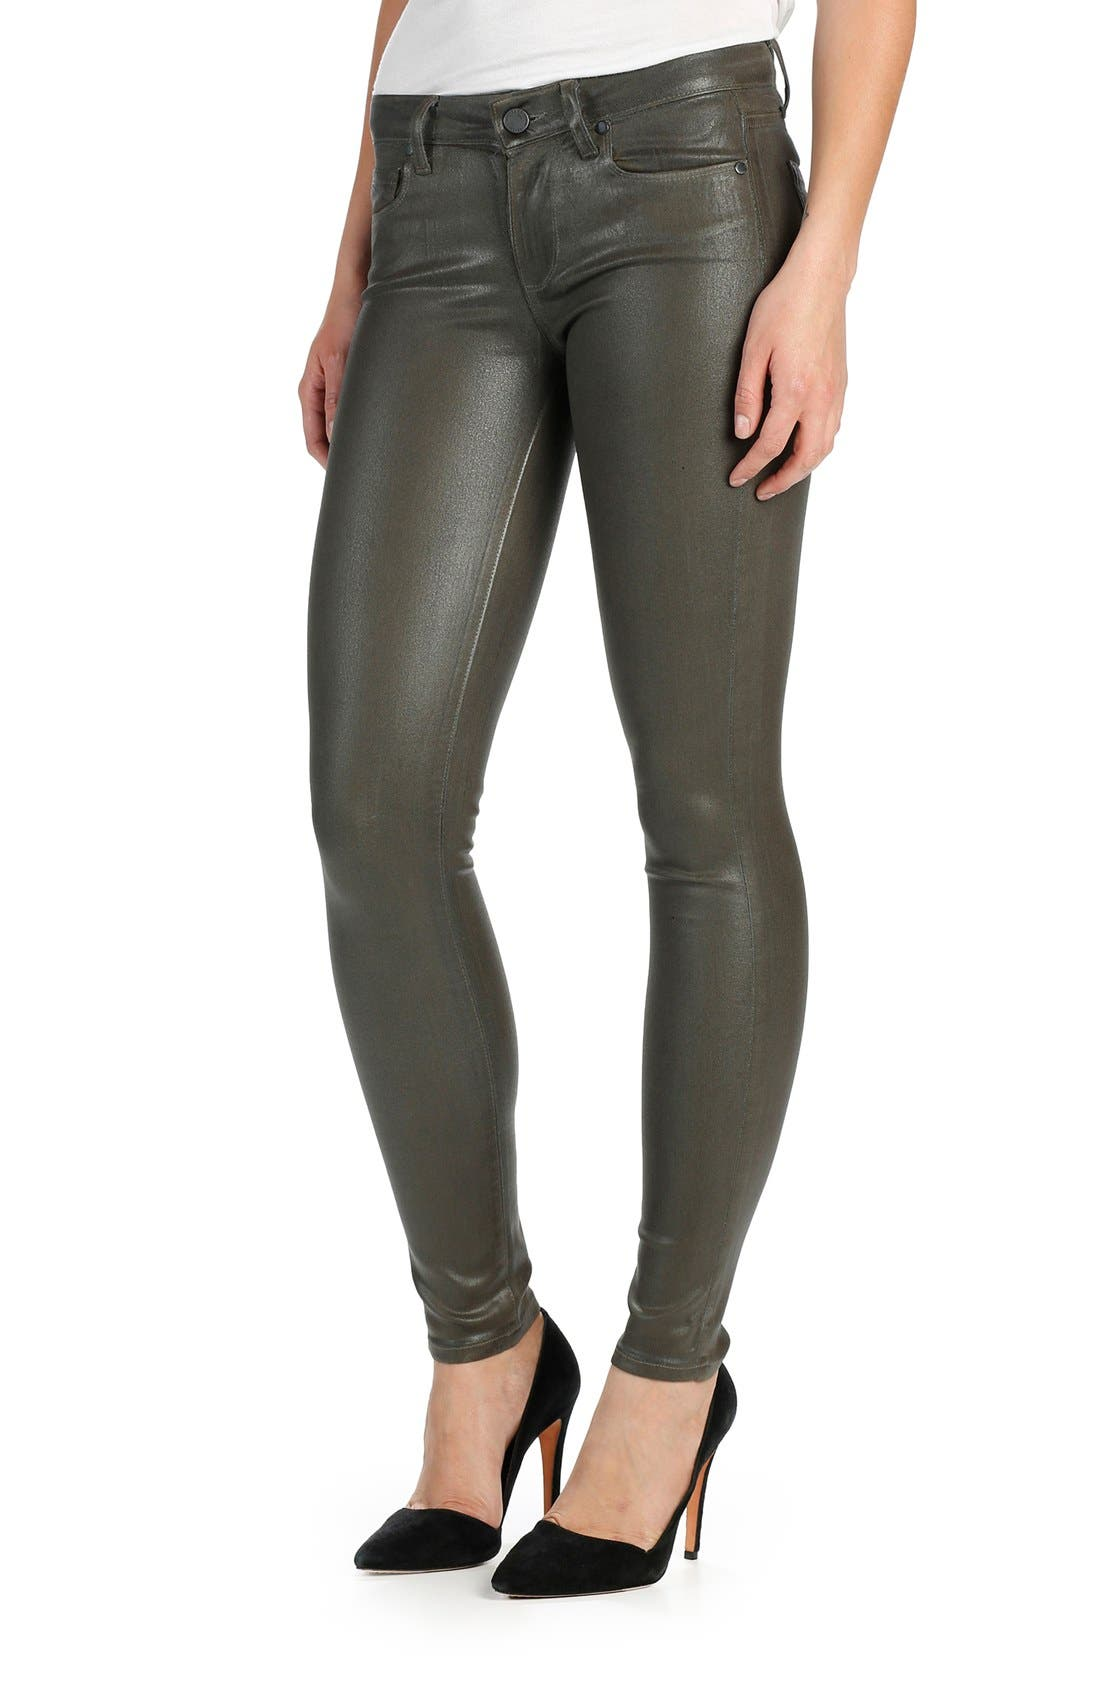 Transcend Verdugo Coated Ultra Skinny Jeans,                         Main,                         color, Army Luxe Coating